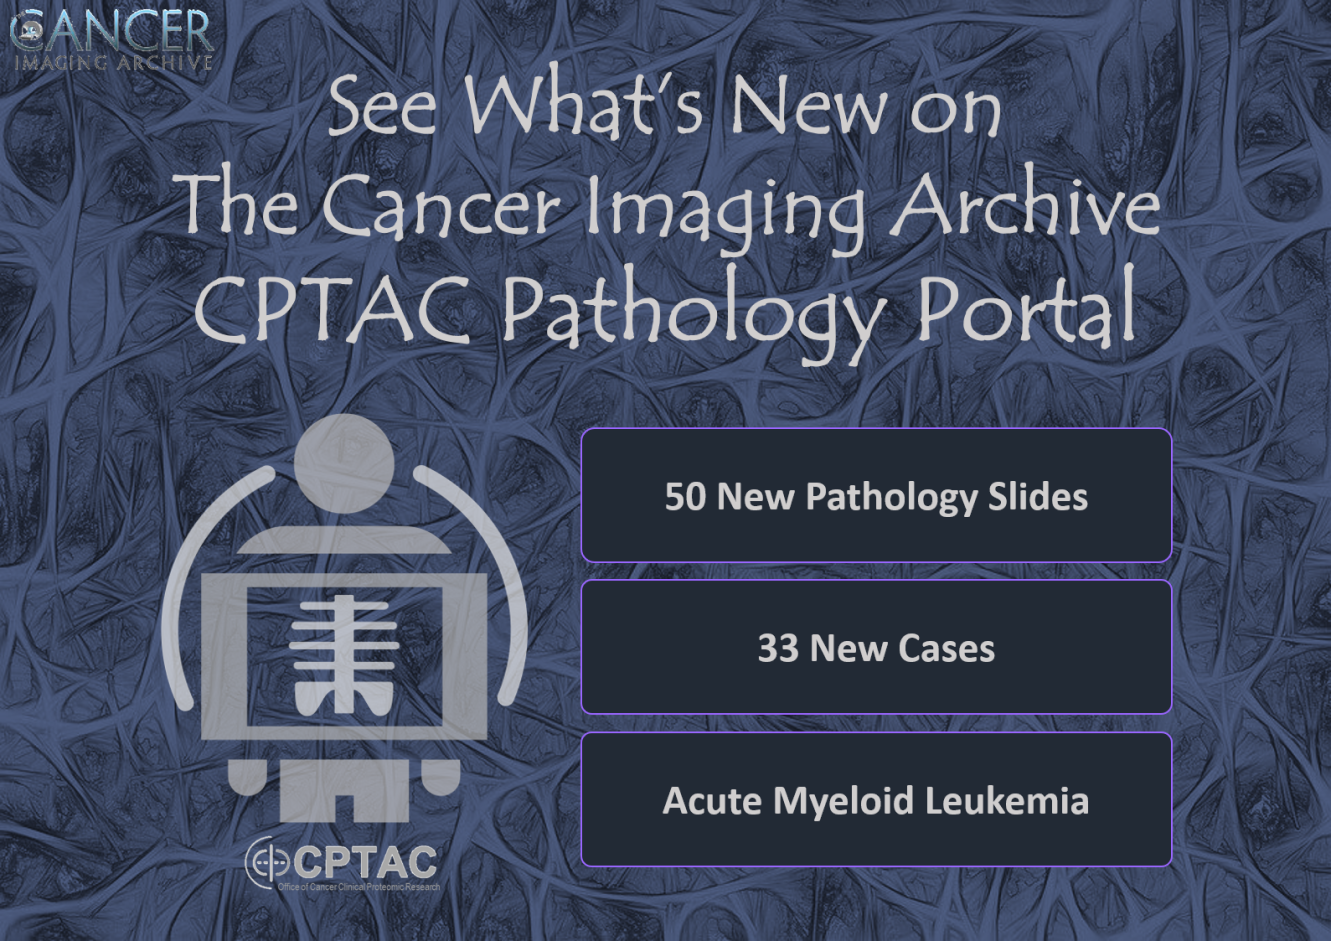 TCIA CPTAC Pathology Image April 2020